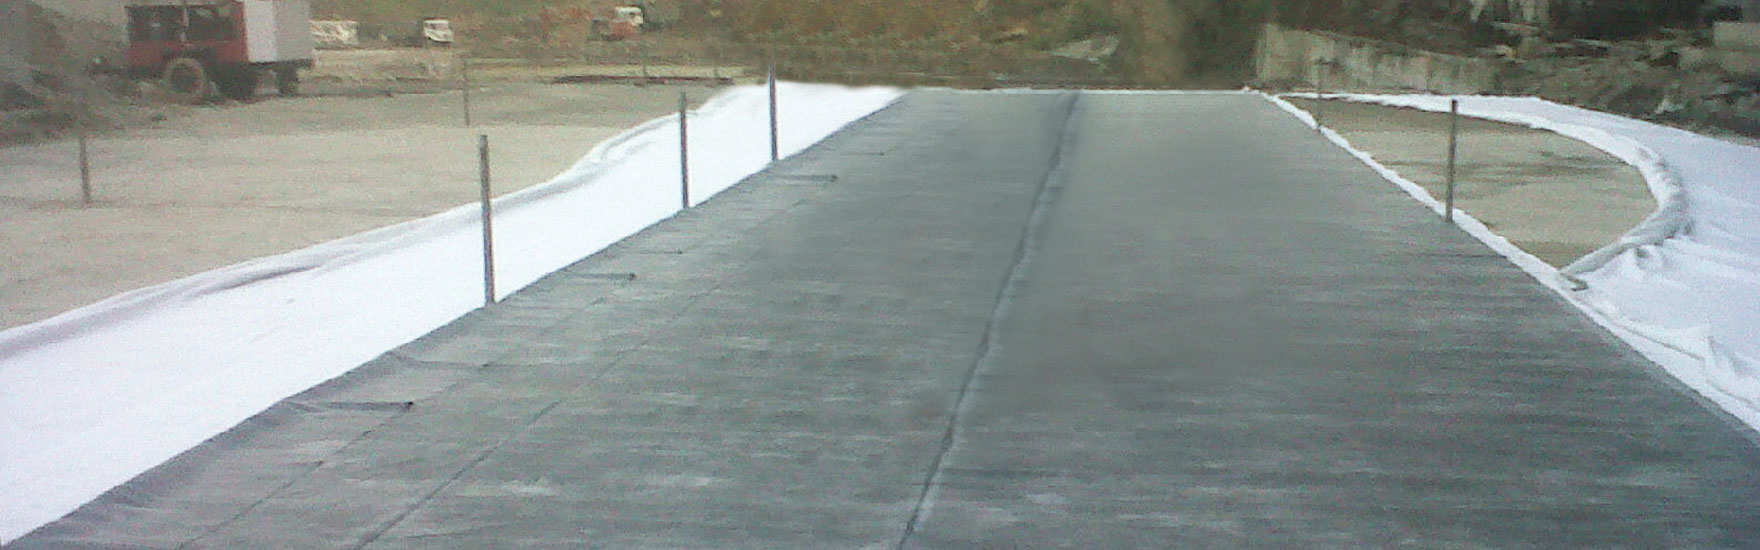 EPDM Waterproofing & Single Ply Membrane | Geomembranes